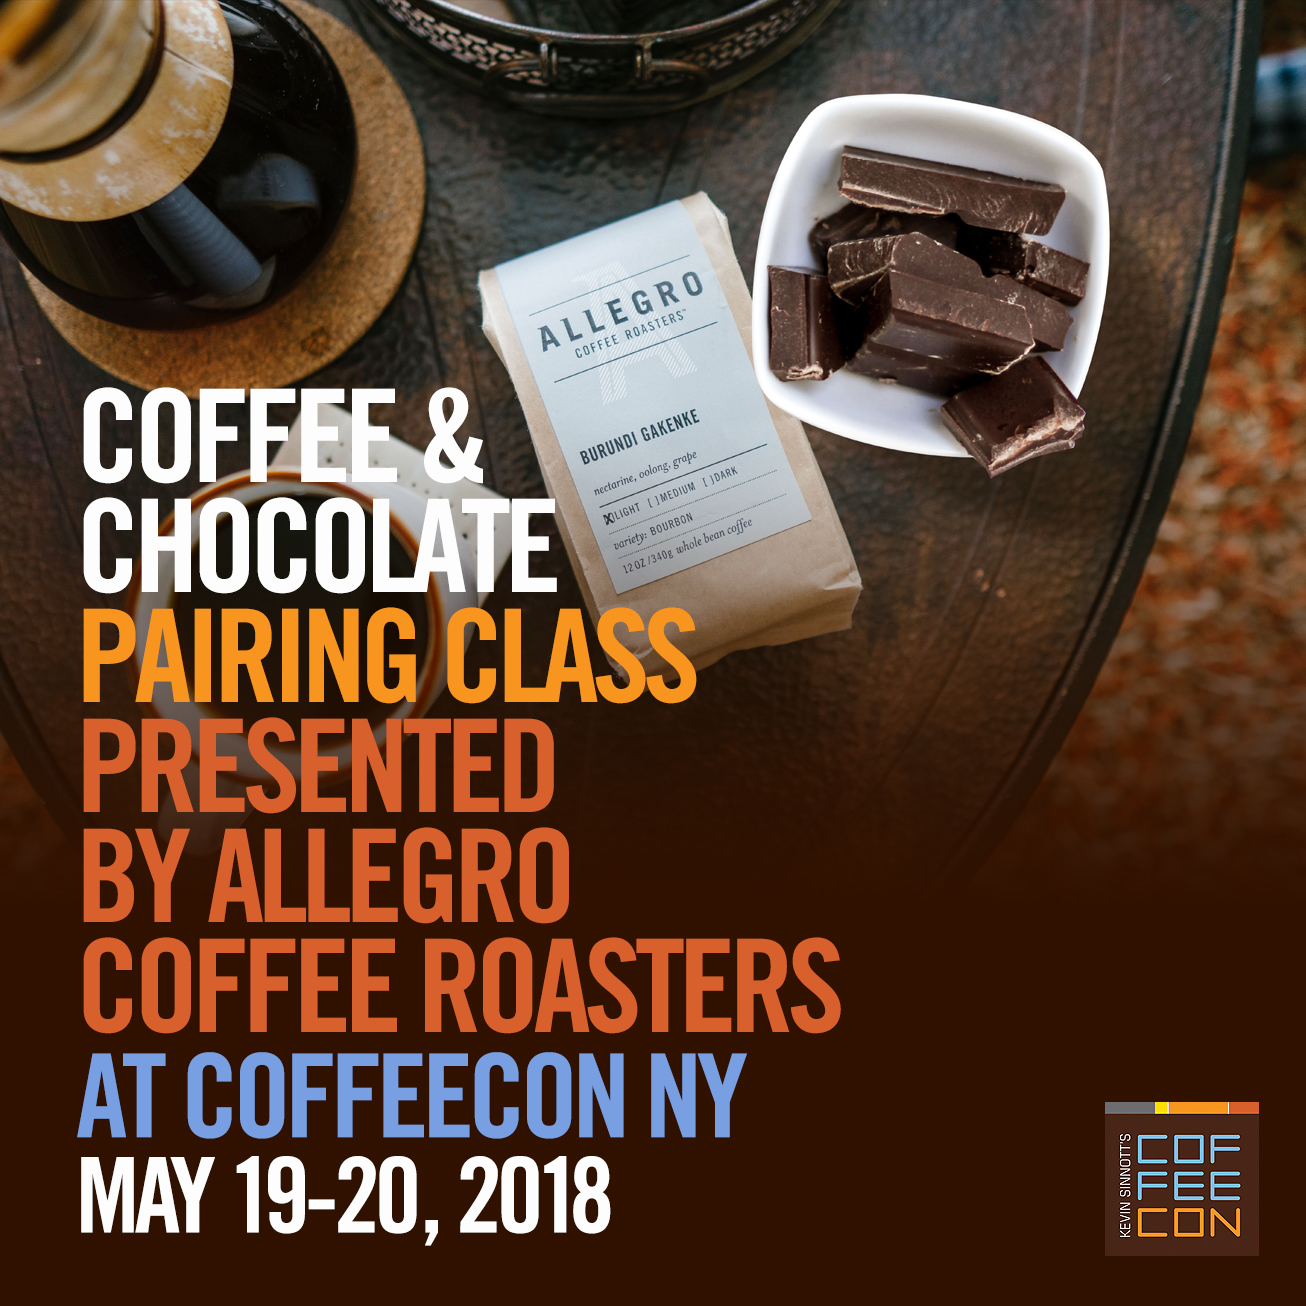 Coffee & Chocolate Pairing with Allegro Coffee Roasters